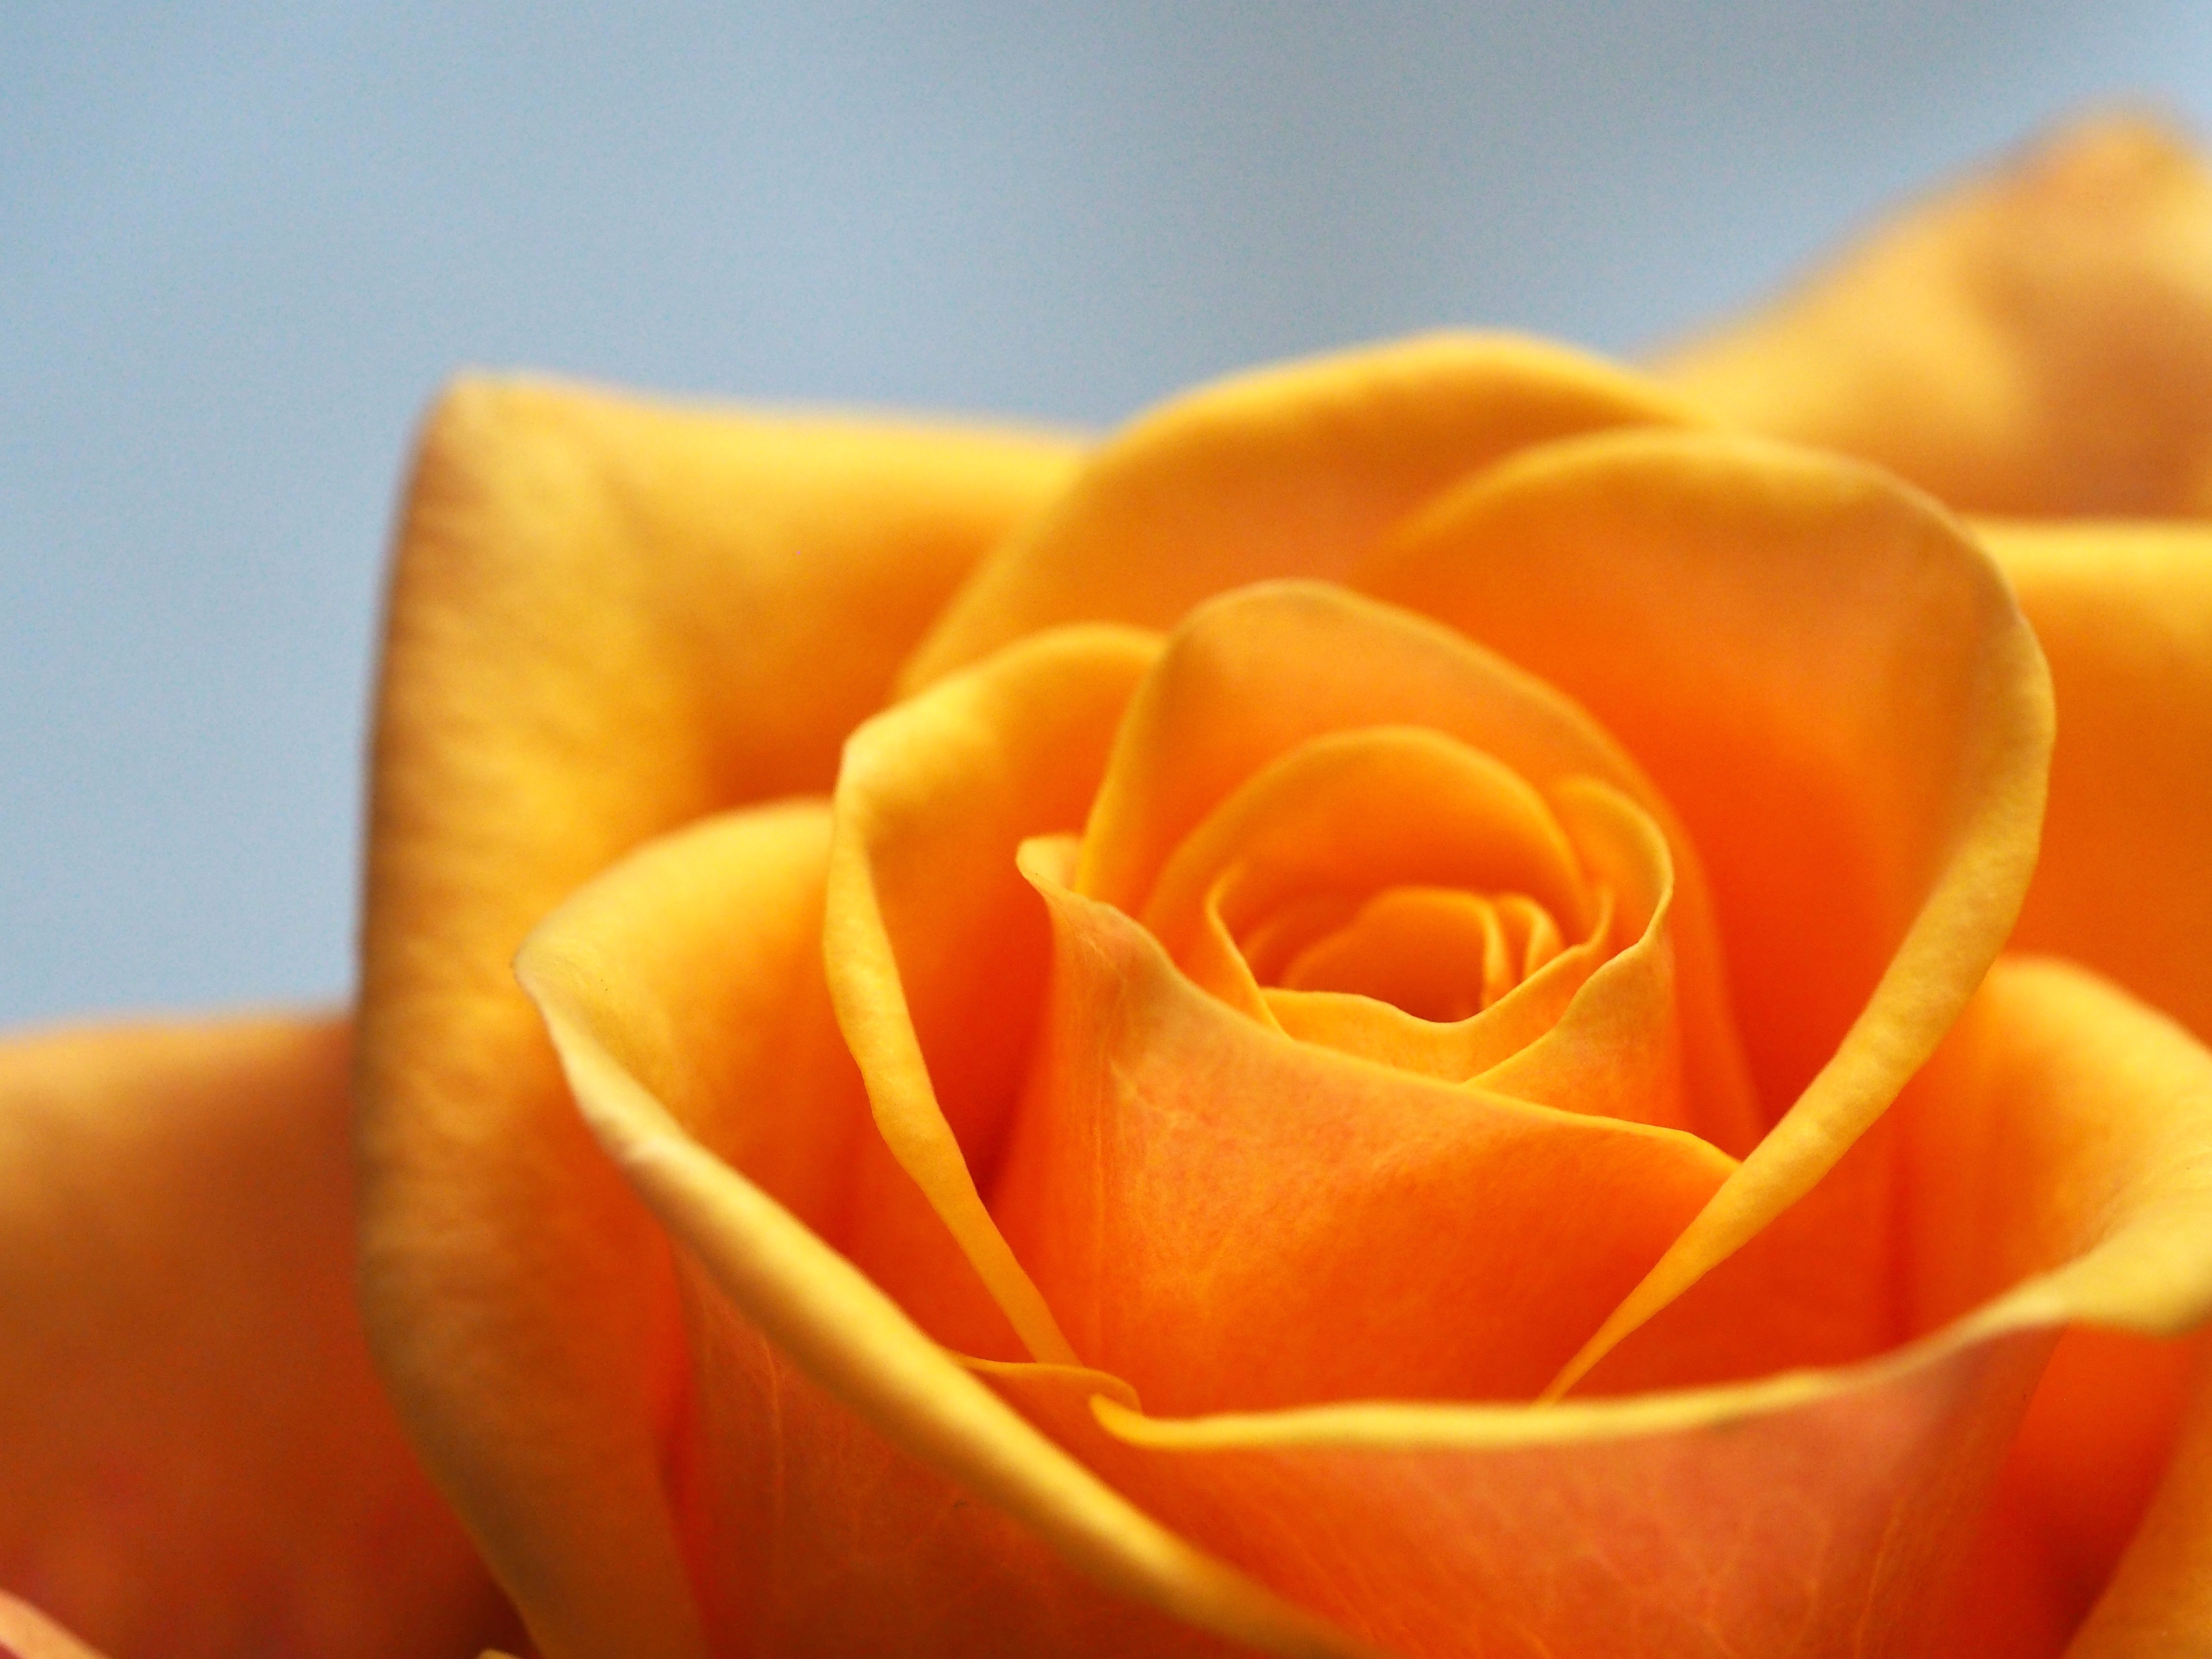 Close-up of yellow rose opening up.